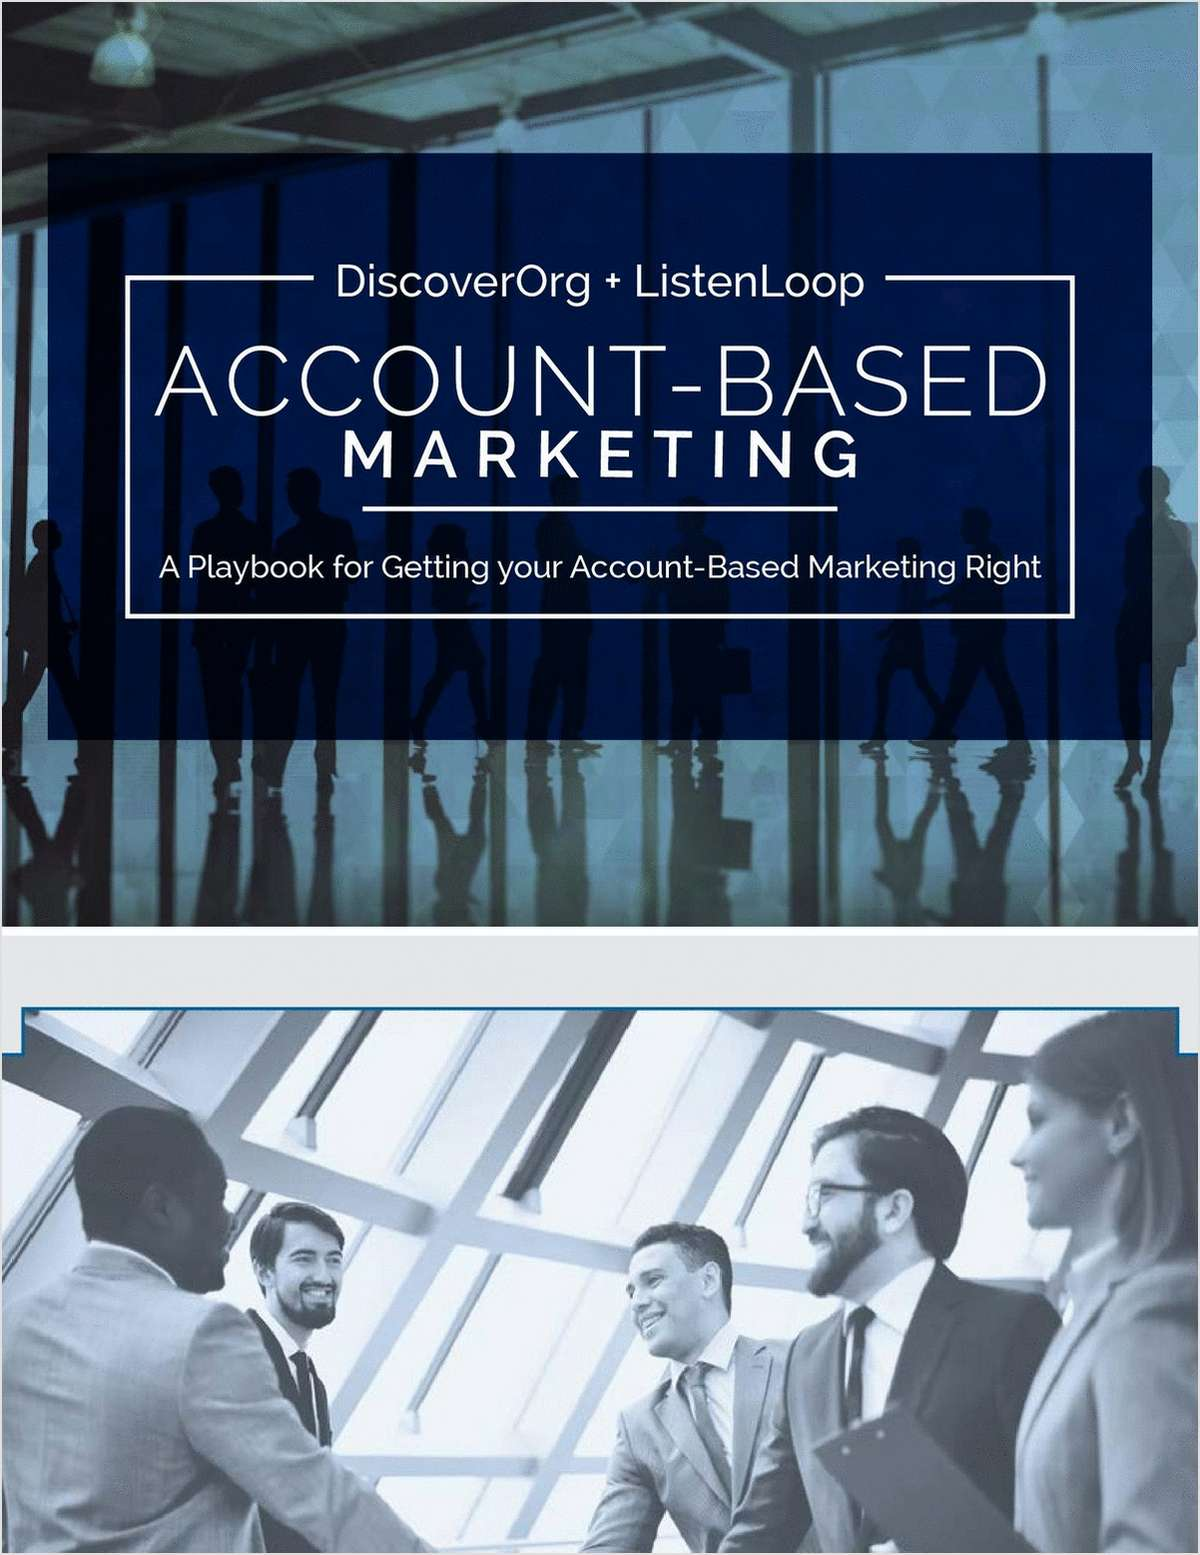 The Account-Based Marketing Playbook